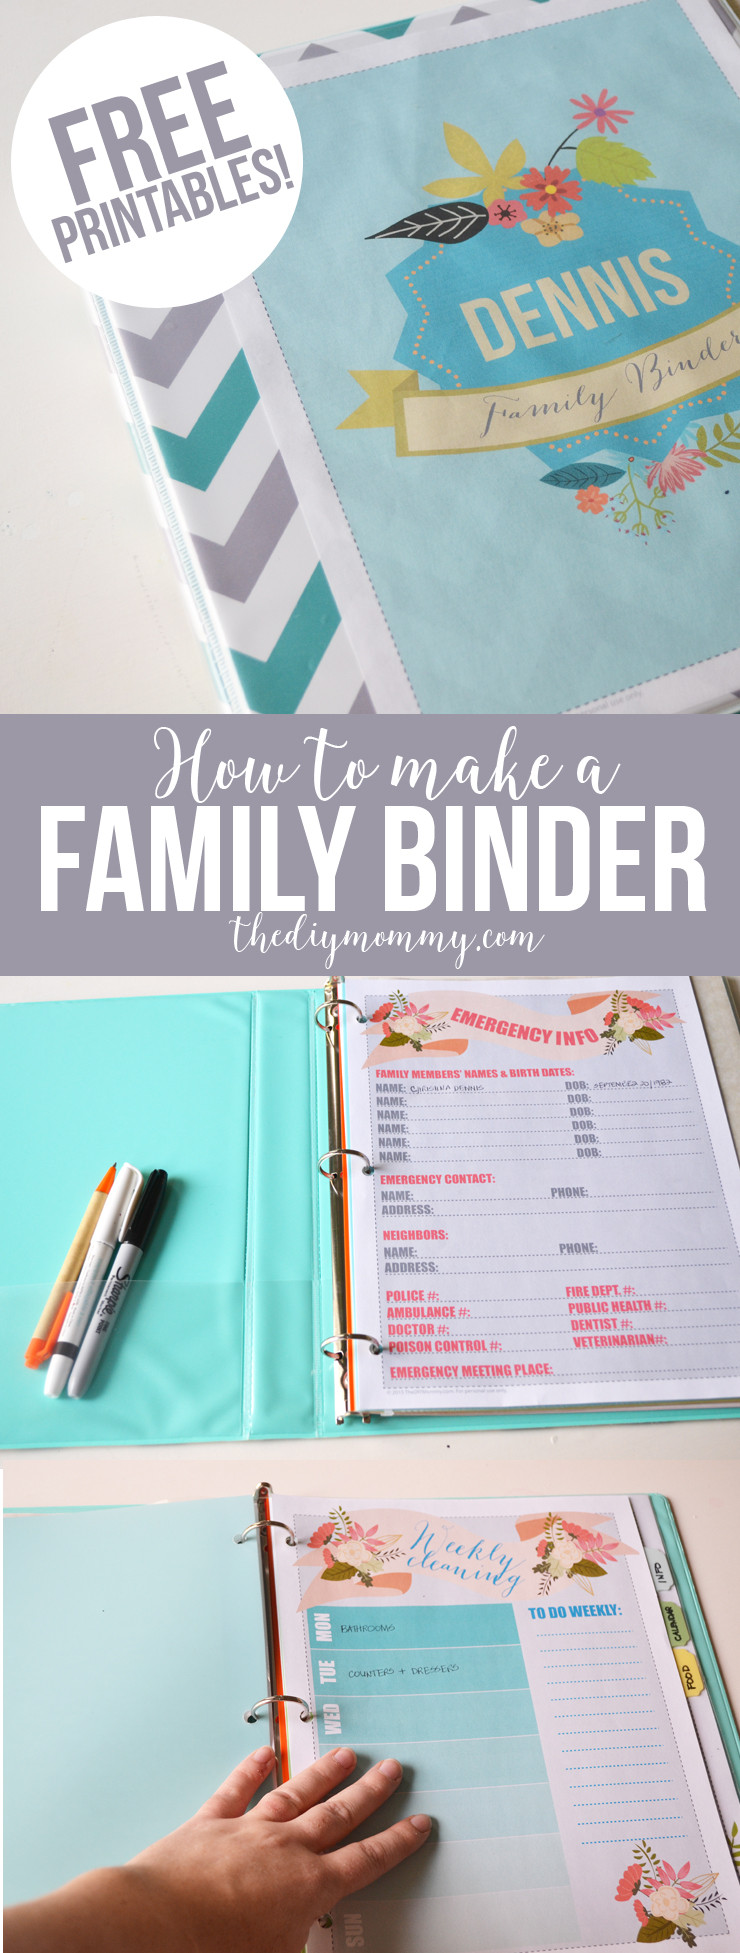 Best ideas about DIY Binder Organization . Save or Pin Make a Household Organization Binder With Free Floral Now.